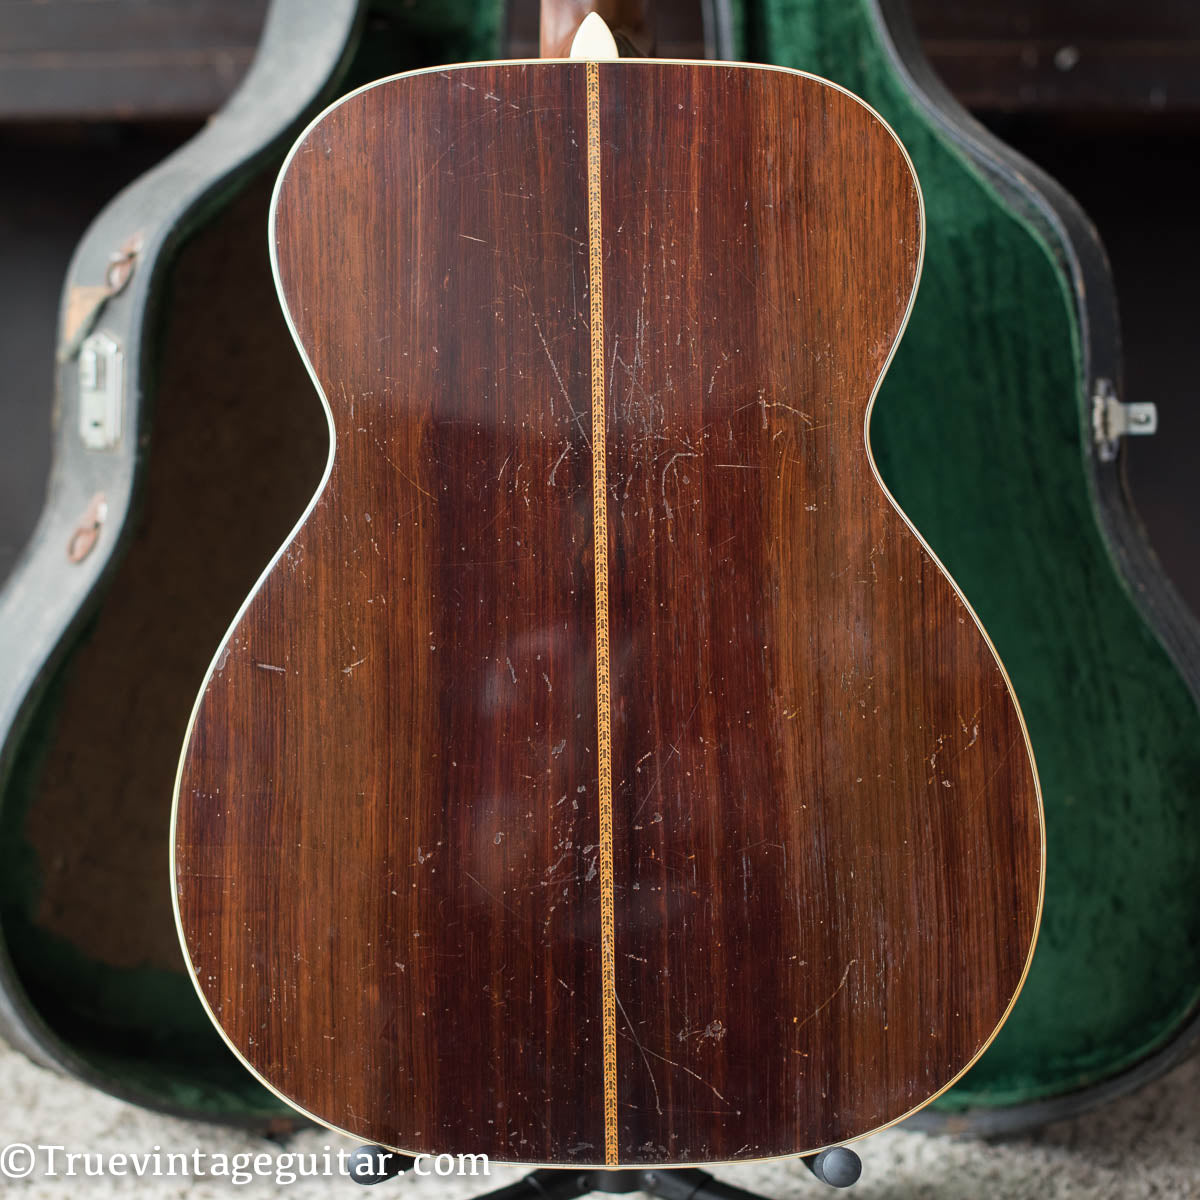 Brazilian Rosewood back and sides, Vintage 1941 Martin 000-42 acoustic guitar